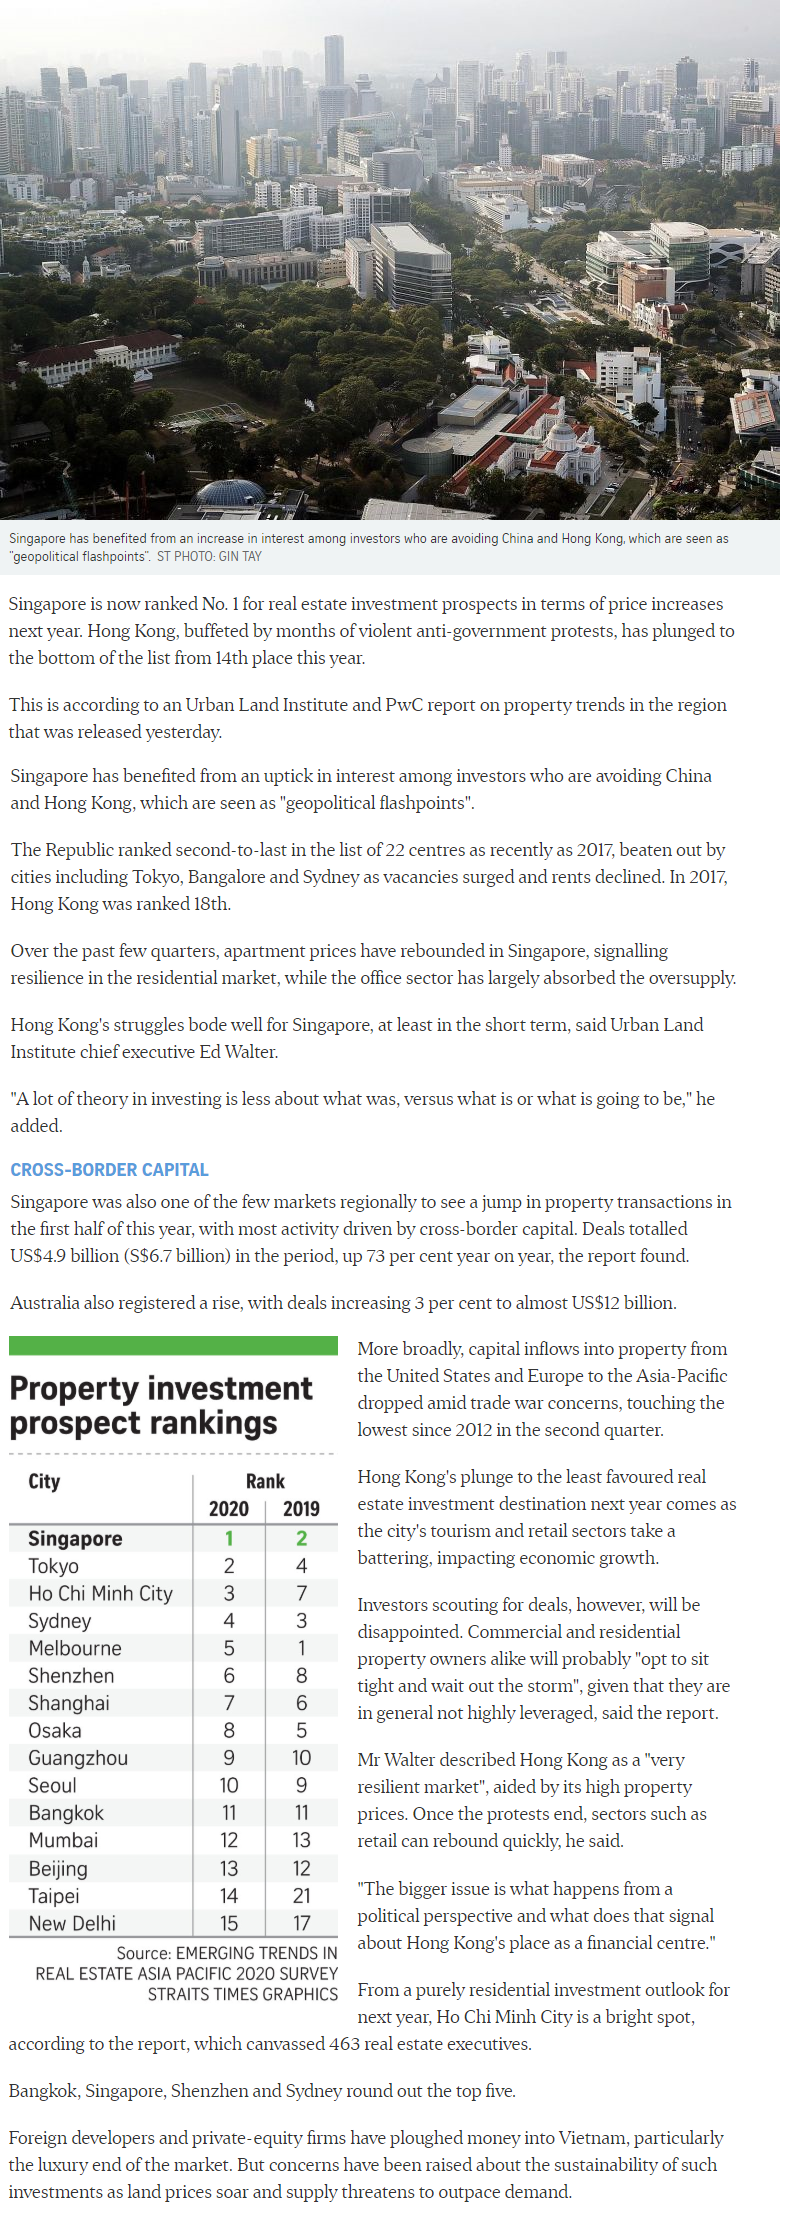 Singapore Tops Region For Property Investment Prospects